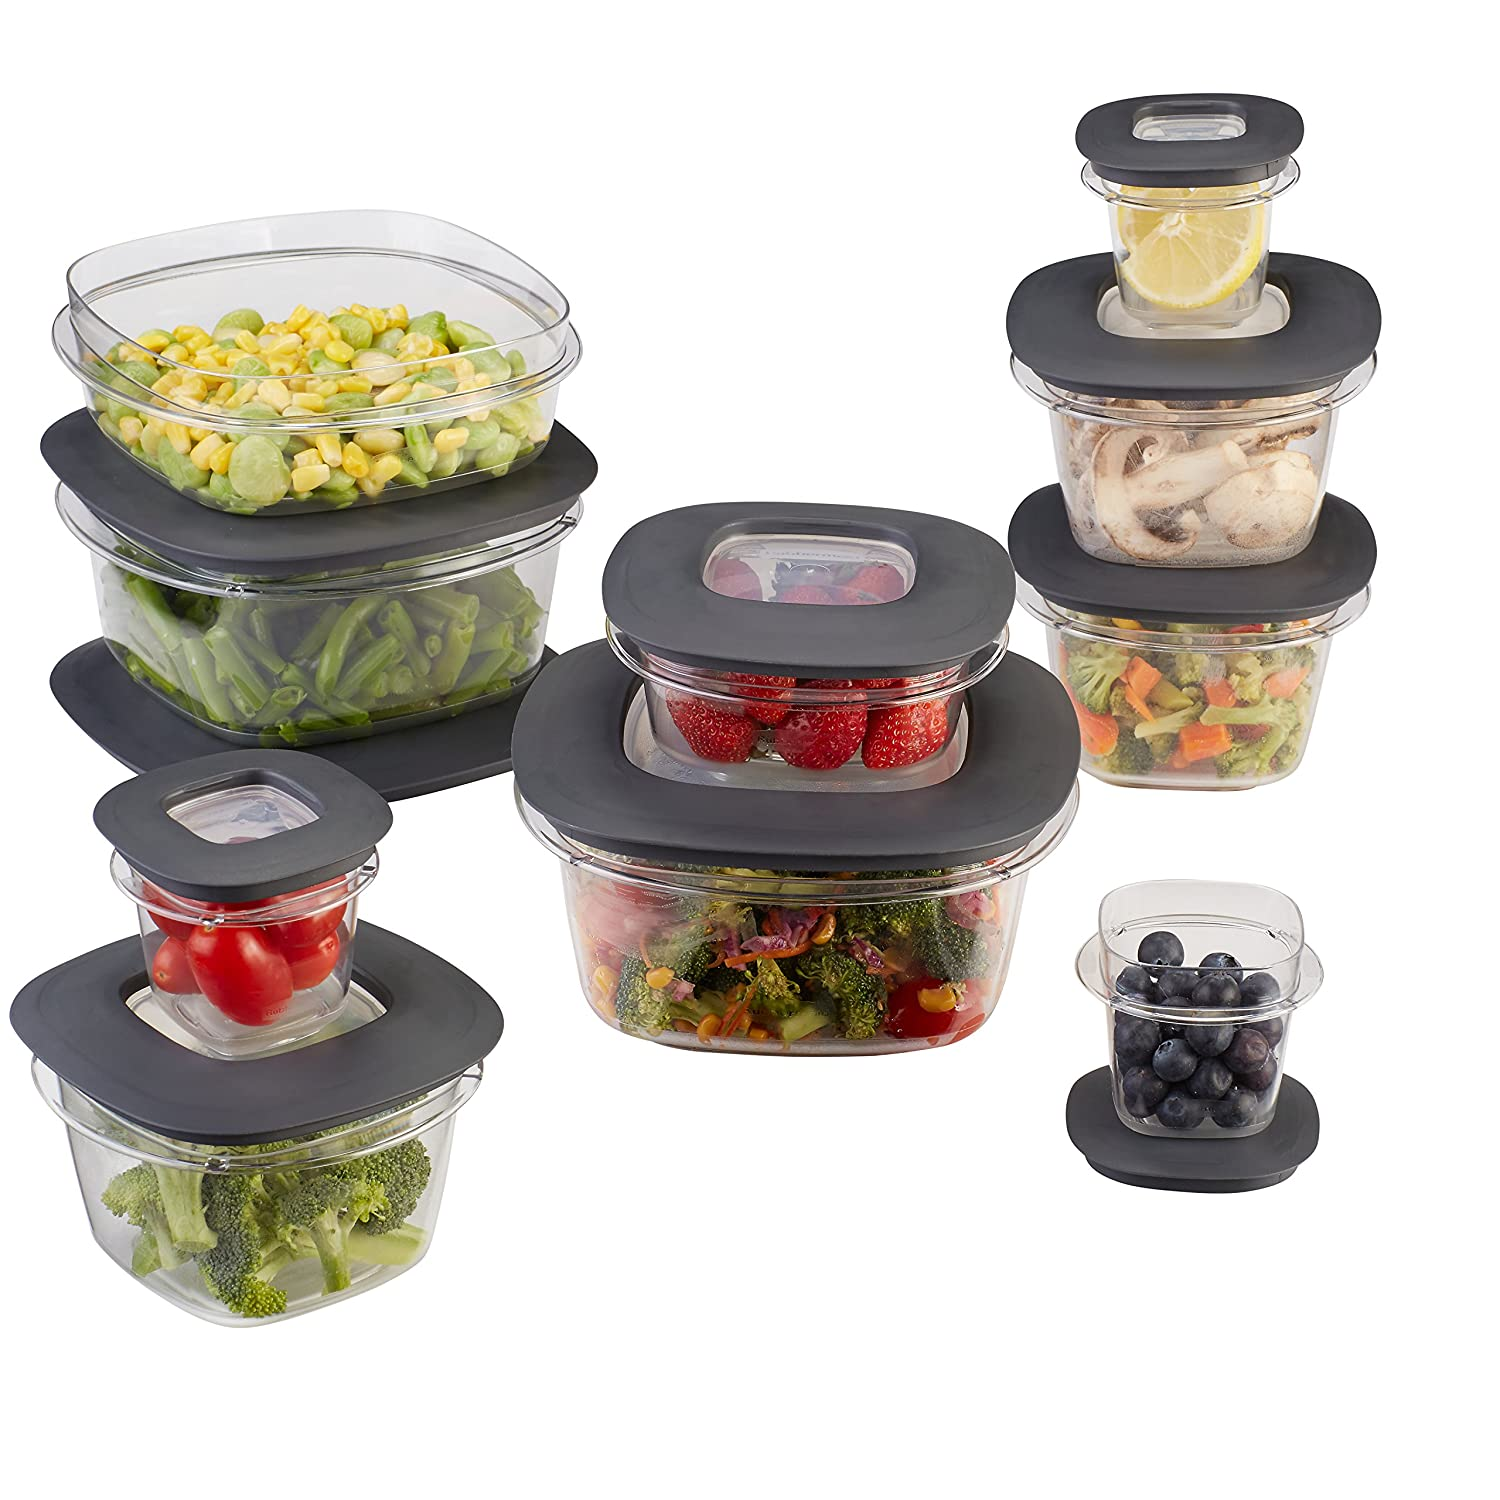 Rubbermaid Rubbermaid Premier Food Storage Containers, 20-Piece Set, Grey, , Grey 1937643